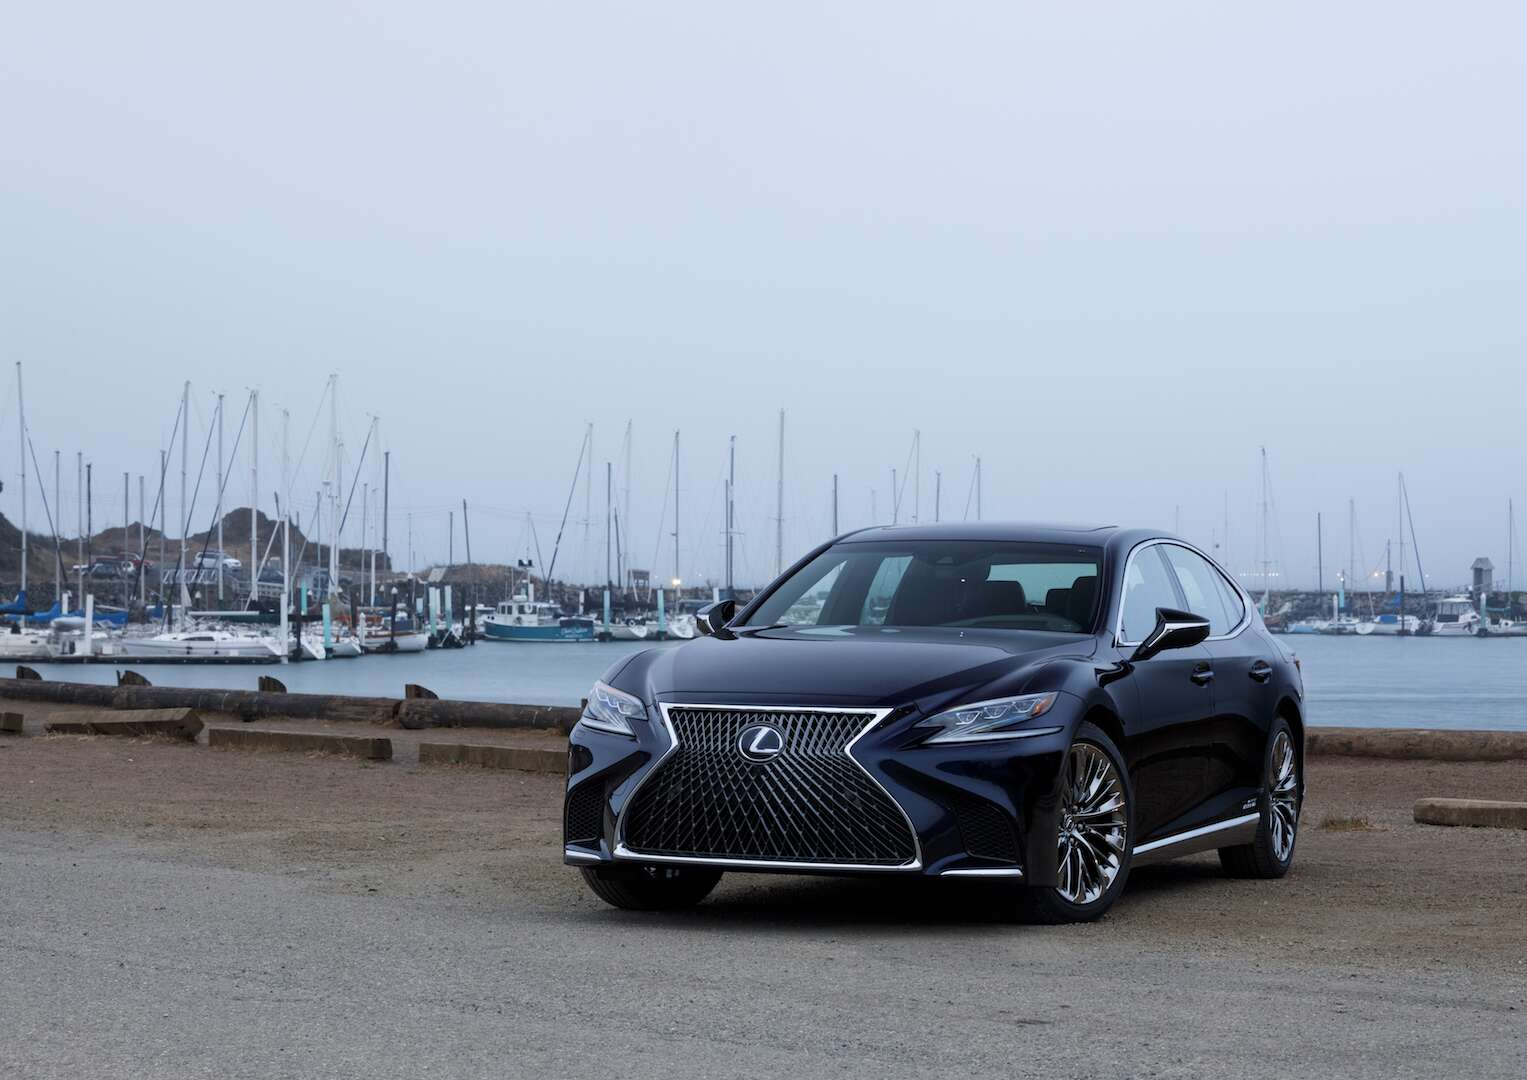 2018 Lexus Ls500h The Sophisticated Sedan For The Younger: 2018 Lexus LS 500h Review: A Flagship Sedan Rises From The